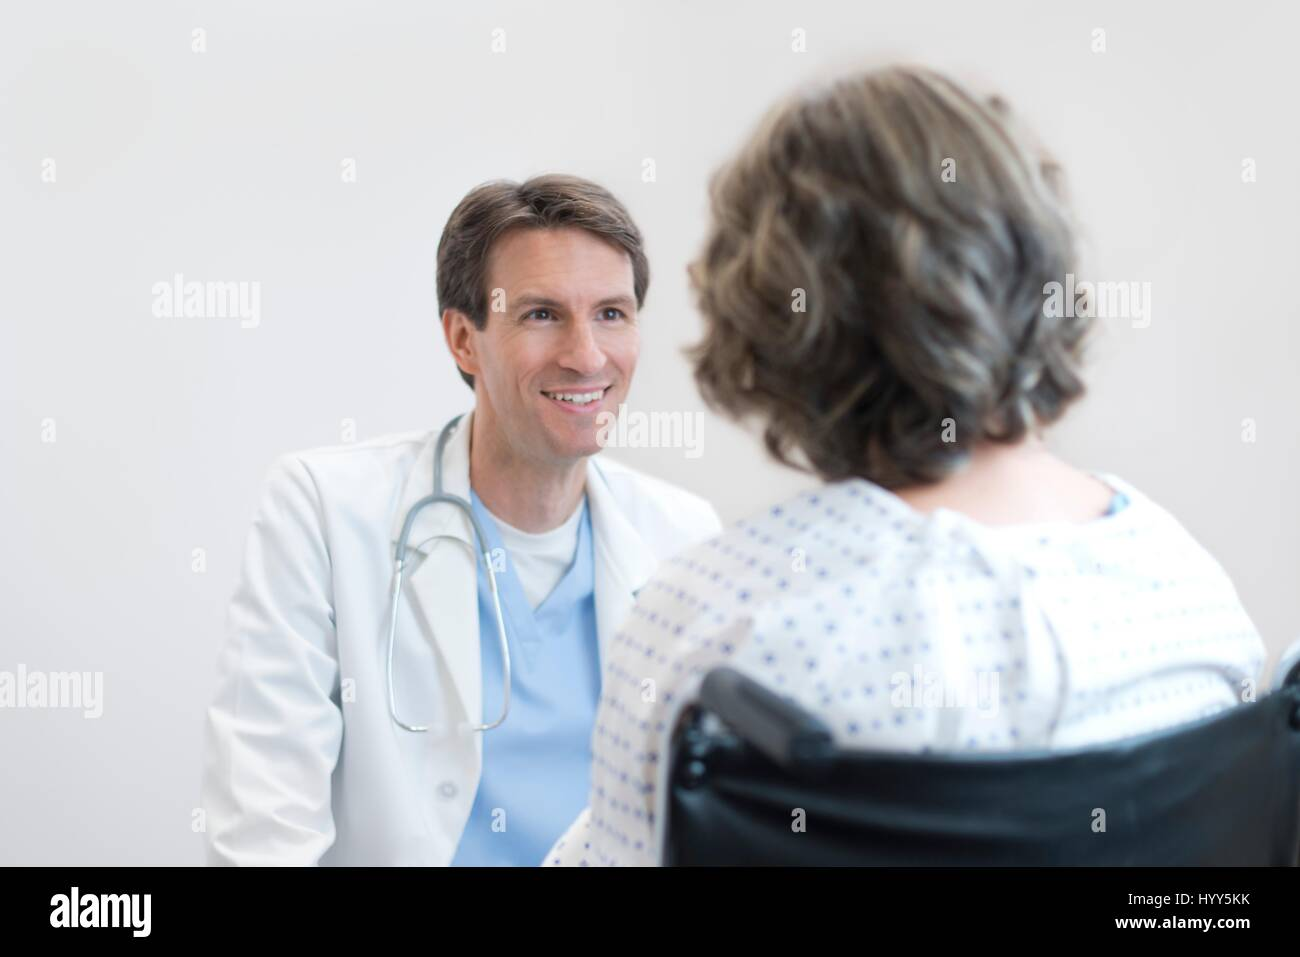 Male doctor smiling at mature female patient in wheelchair. - Stock Image